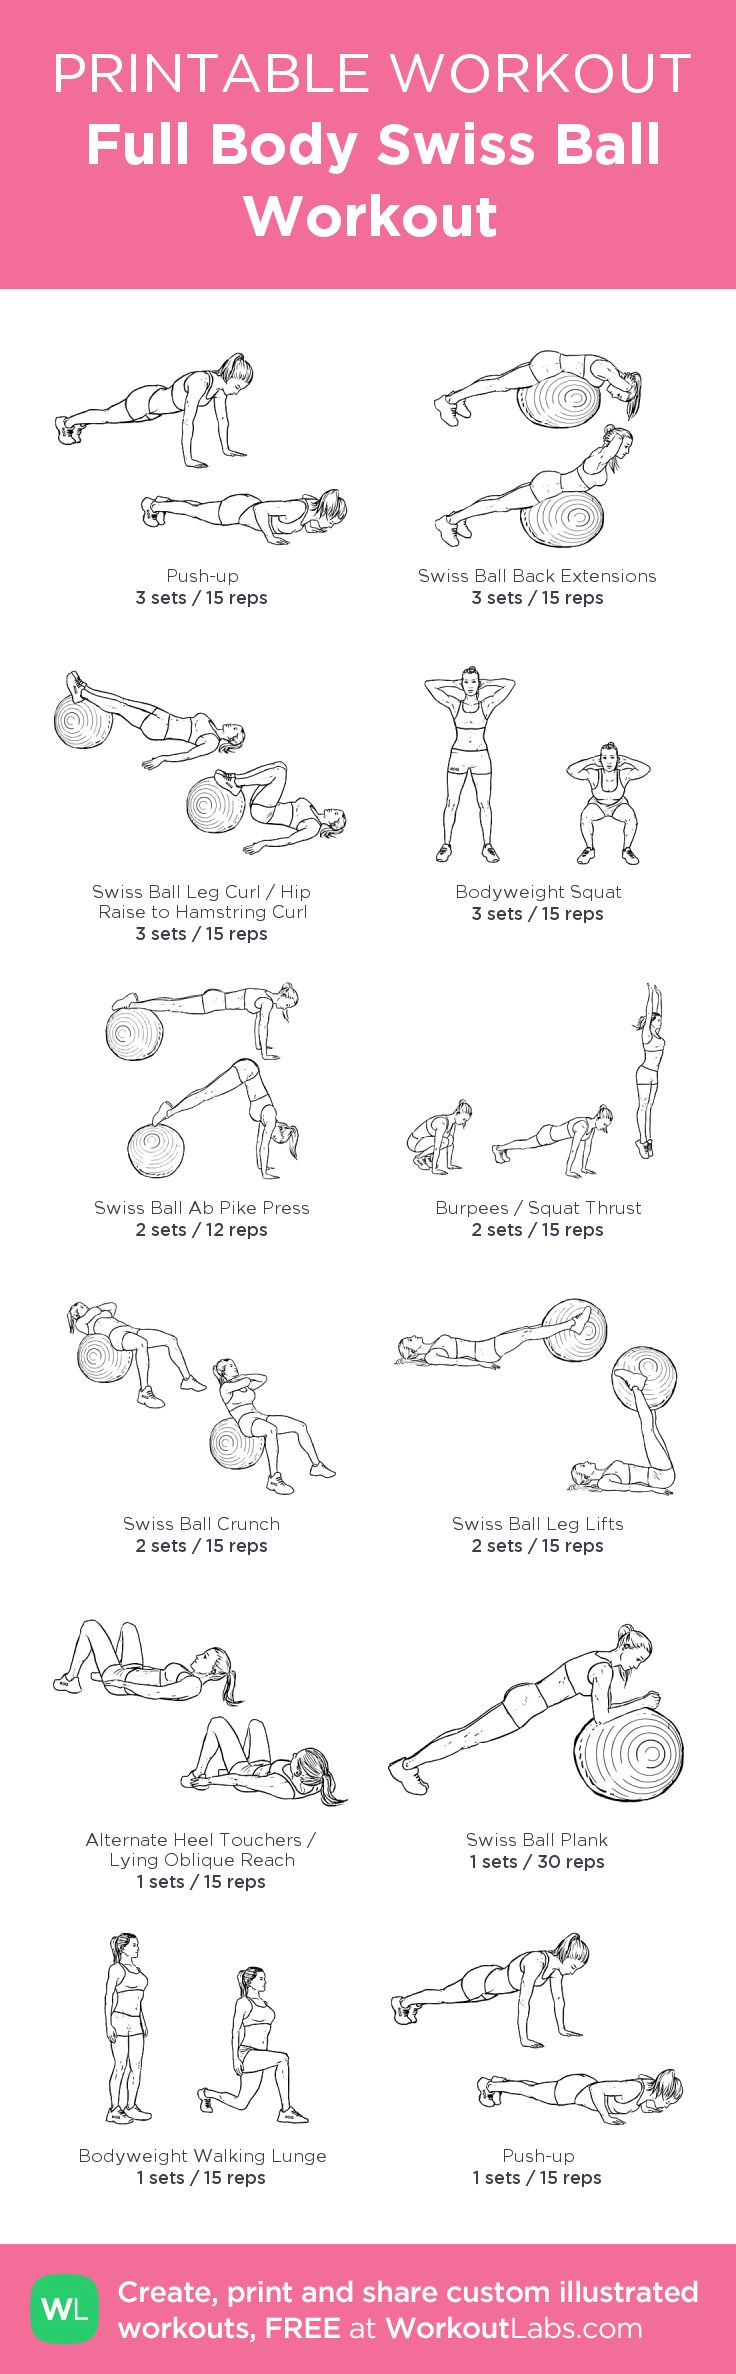 Full Body Swiss Ball Workout – my custom workout created at WorkoutLabs.com • Click through to download as printable PDF! #customworkout